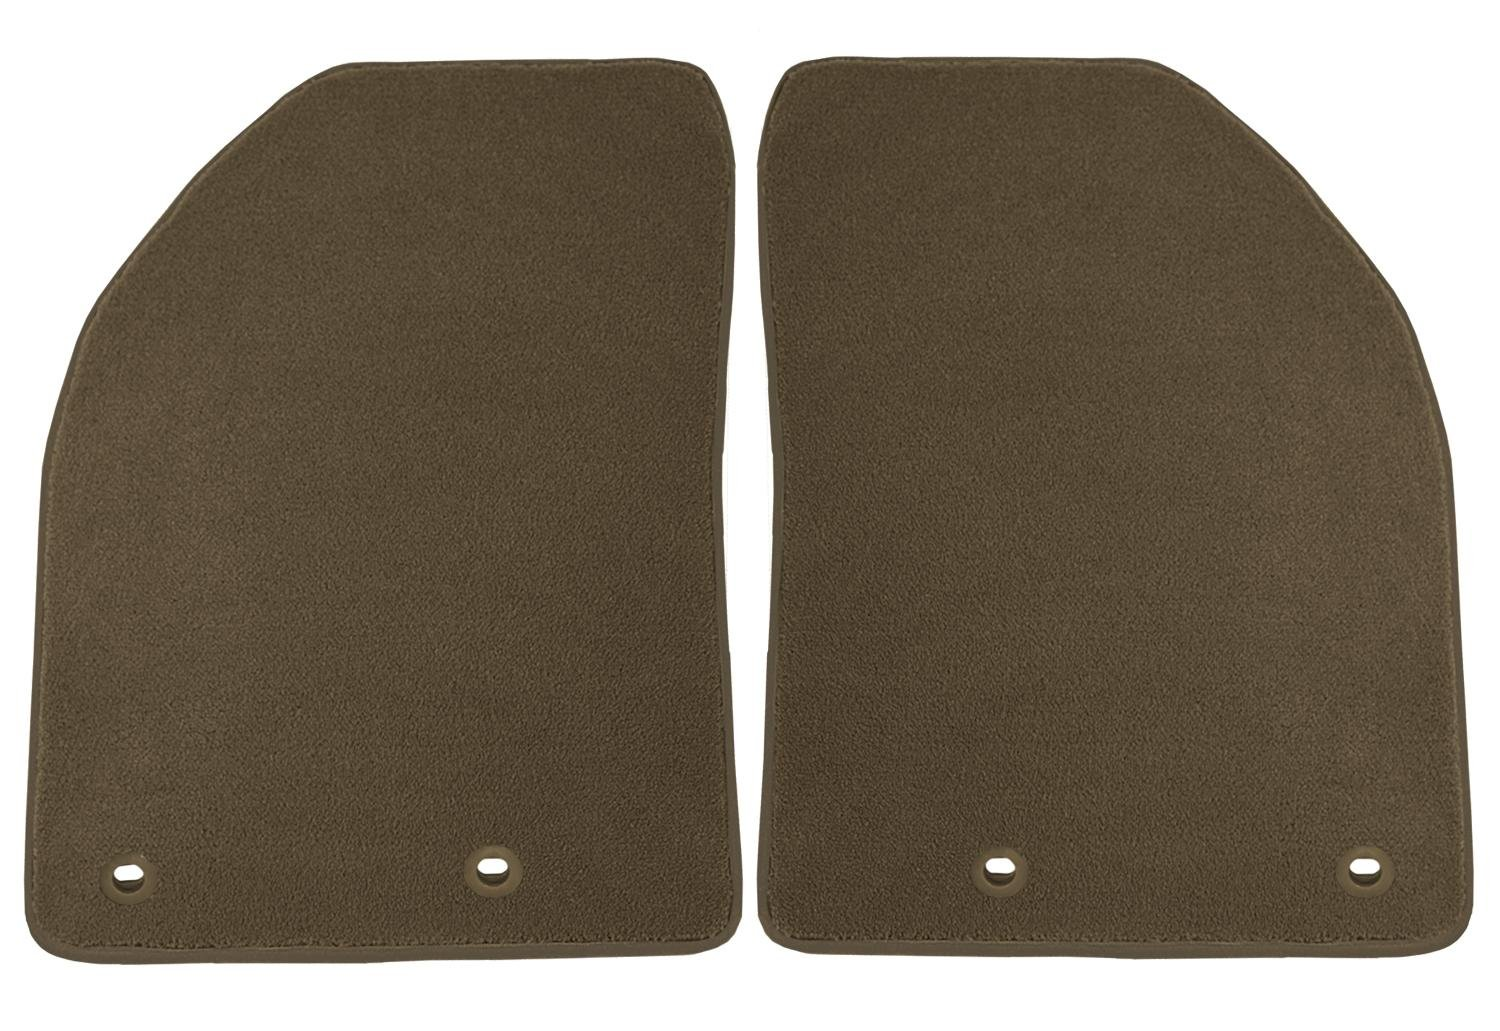 CFMBX1NS9297 Black Nylon Carpet Coverking Custom Fit Front and Rear Floor Mats for Select Nissan Maxima Models